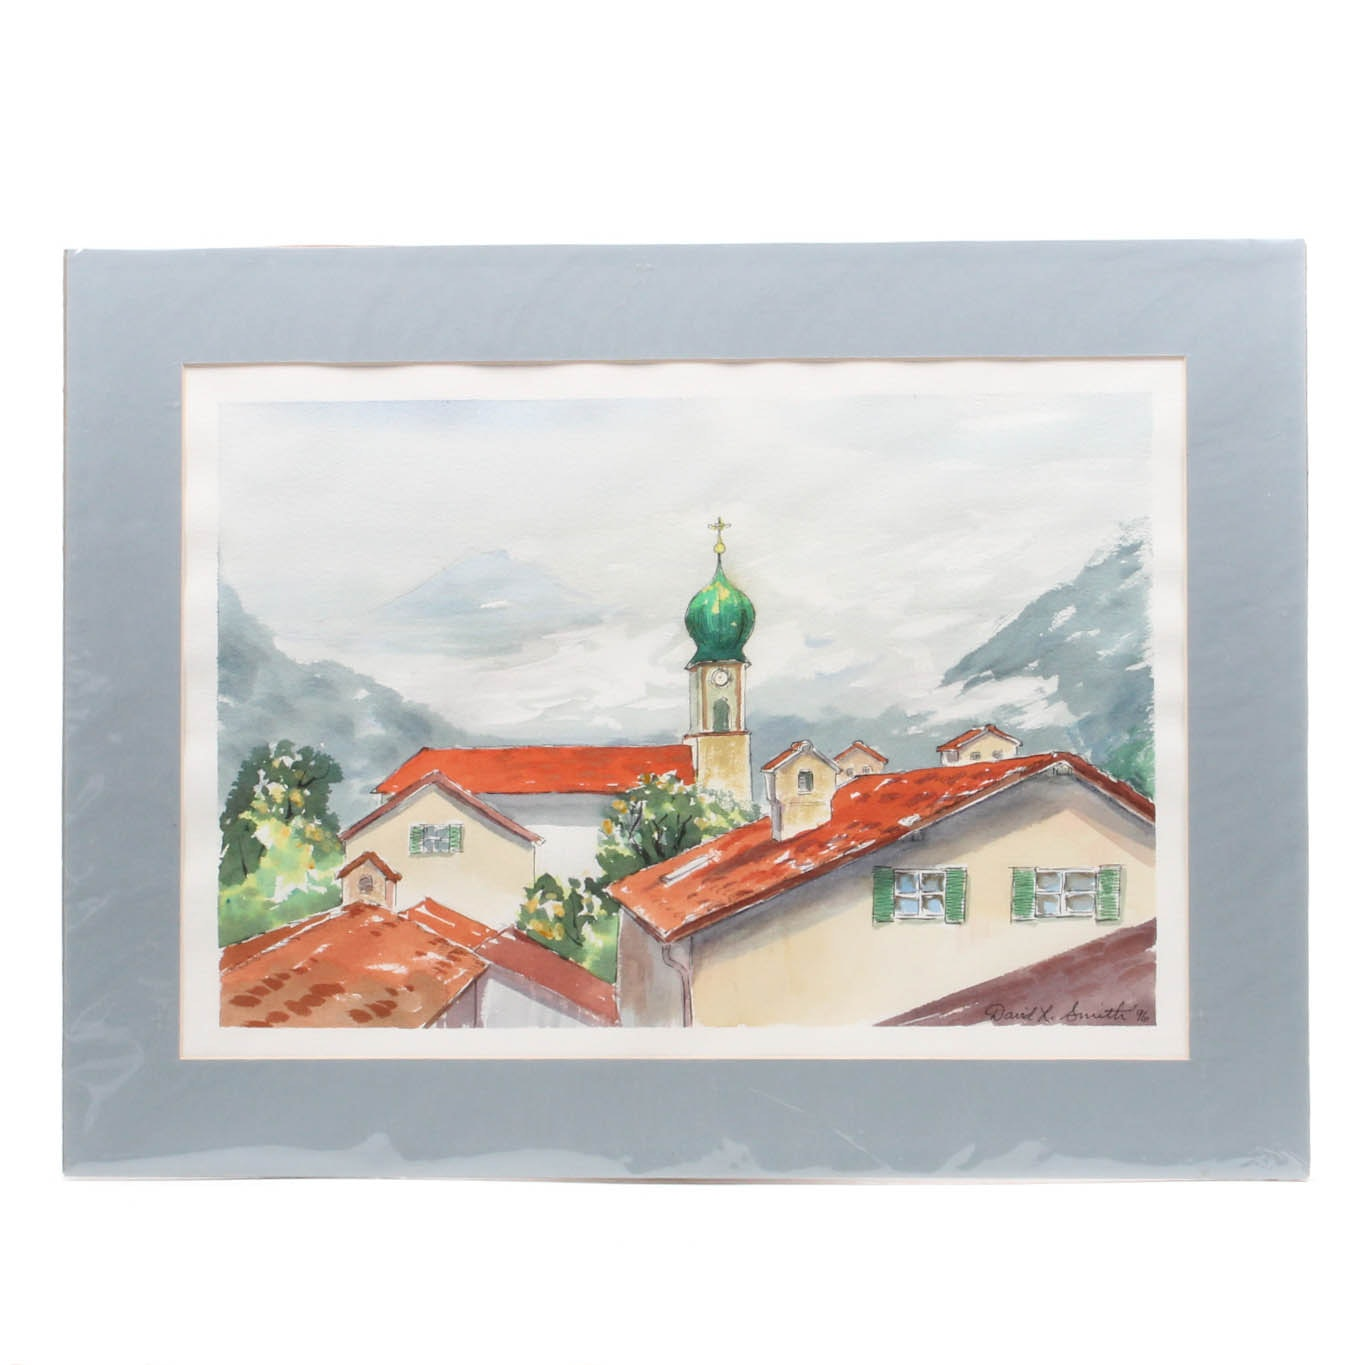 David L. Smith Watercolor Alpine Village Scene